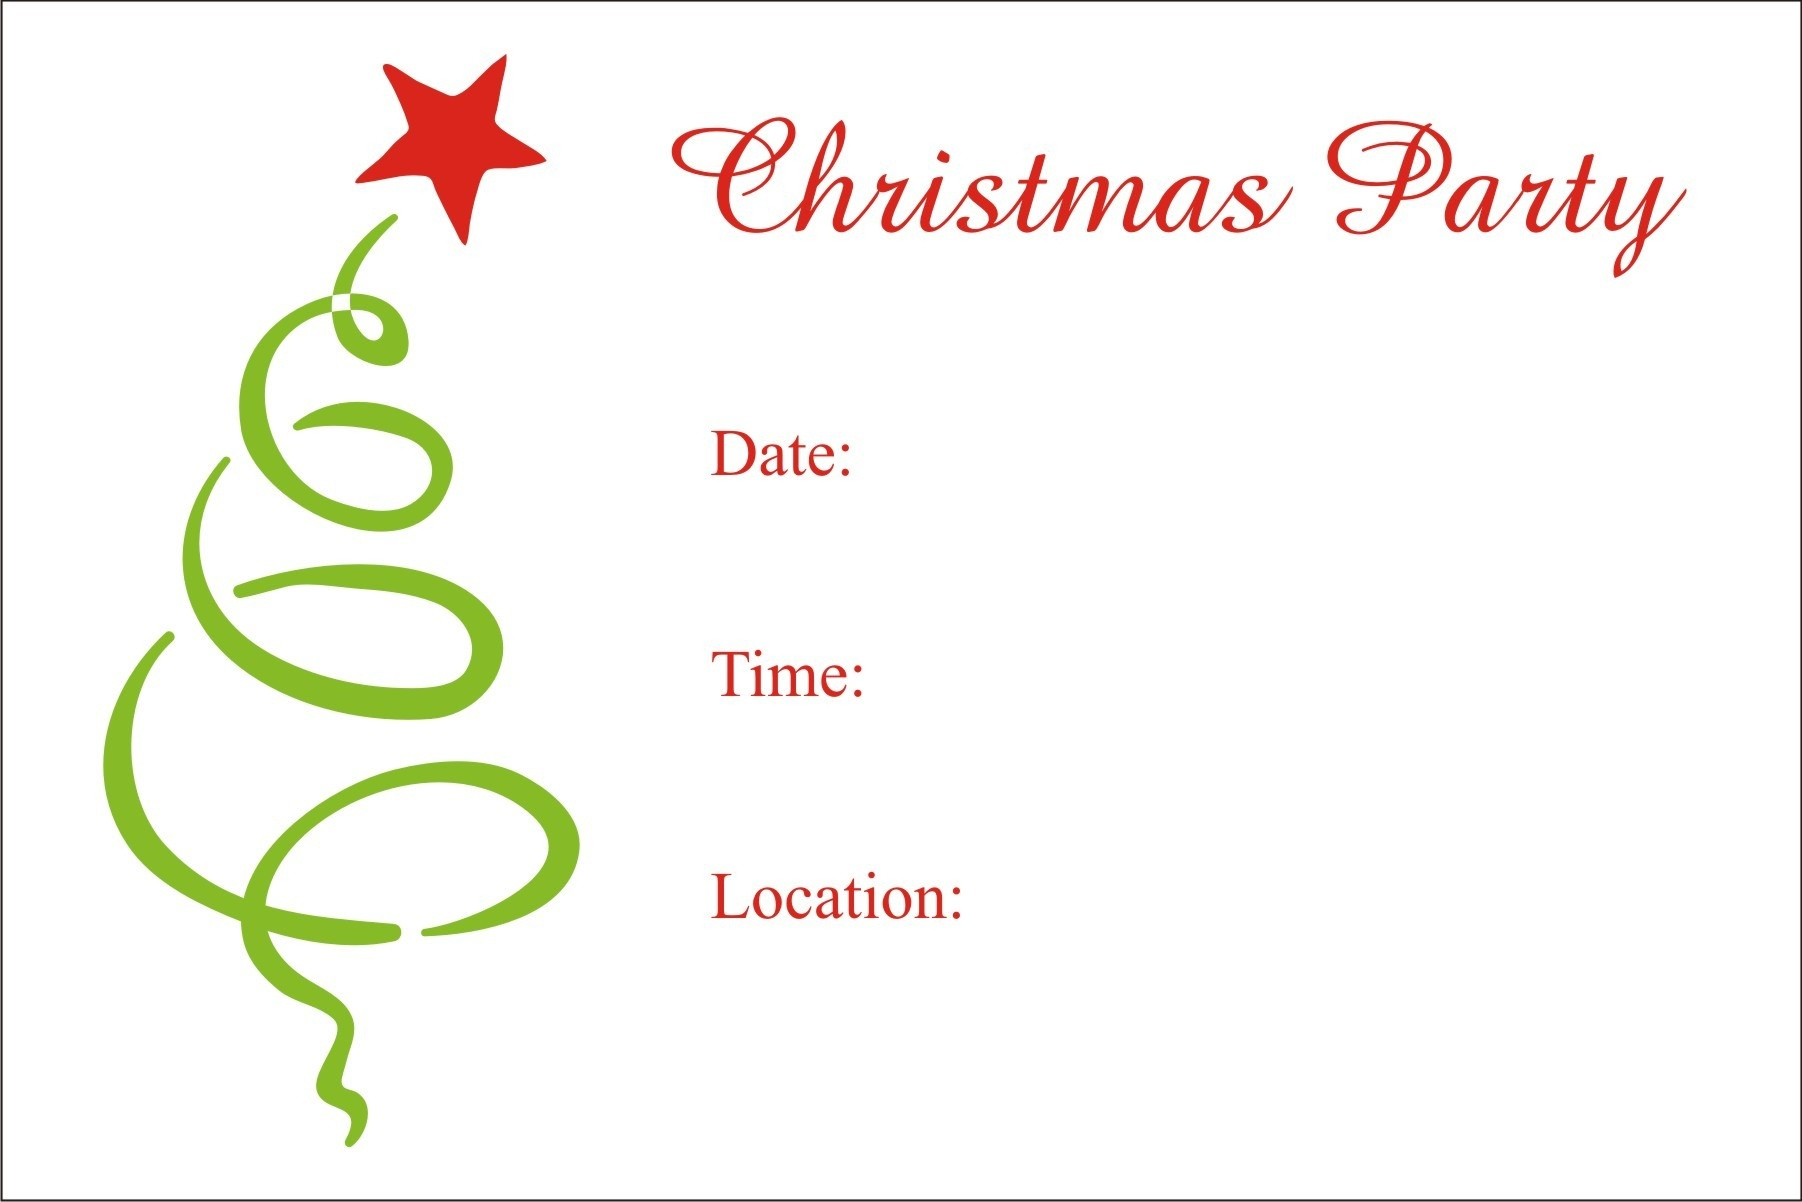 Christmas Party Free Printable Holiday Invitation Personalized Party - Free Printable Personalized Christmas Invitations